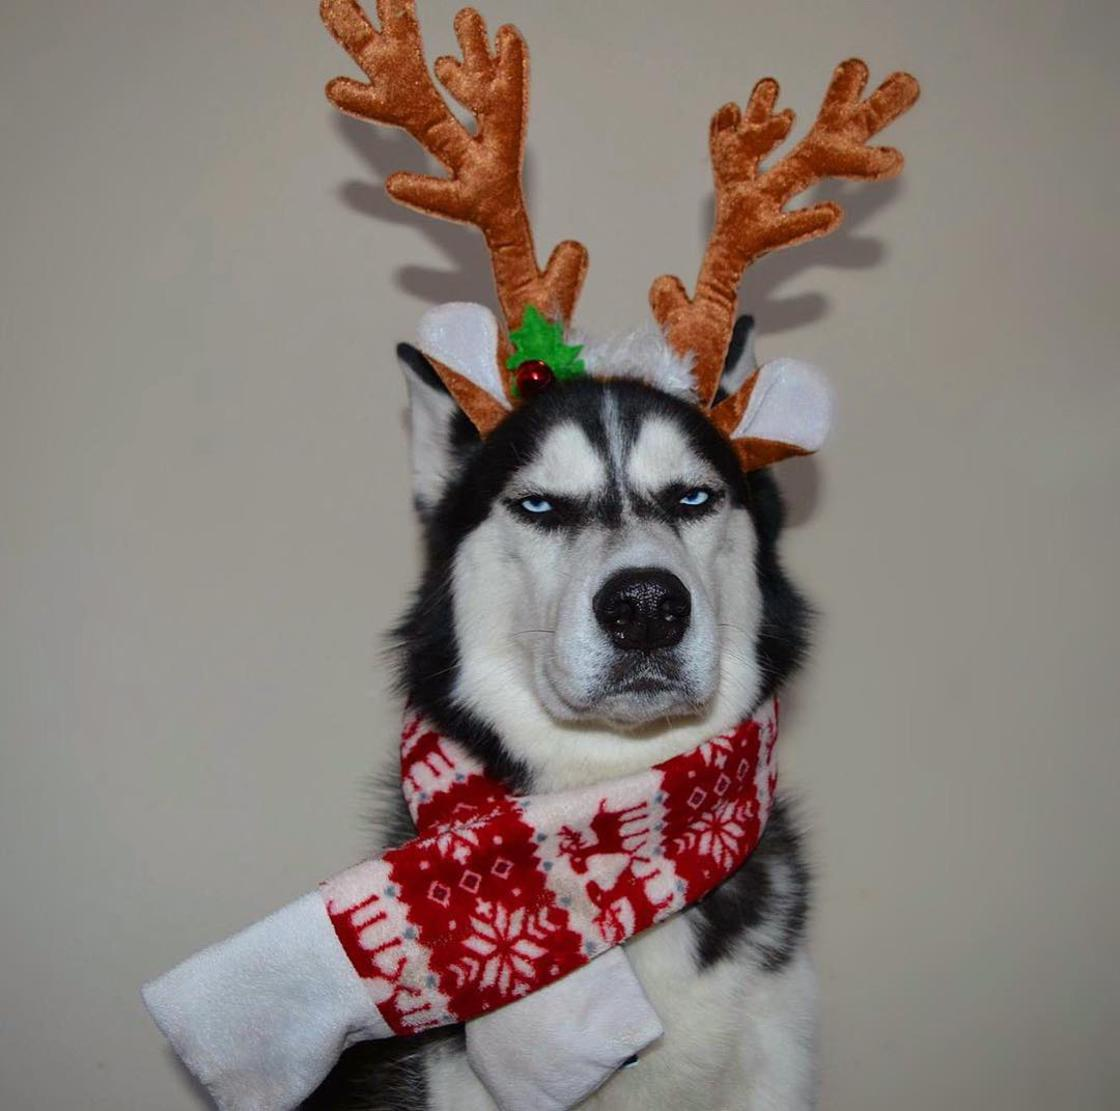 When the most serious Husky in the world poses for a Christmas card